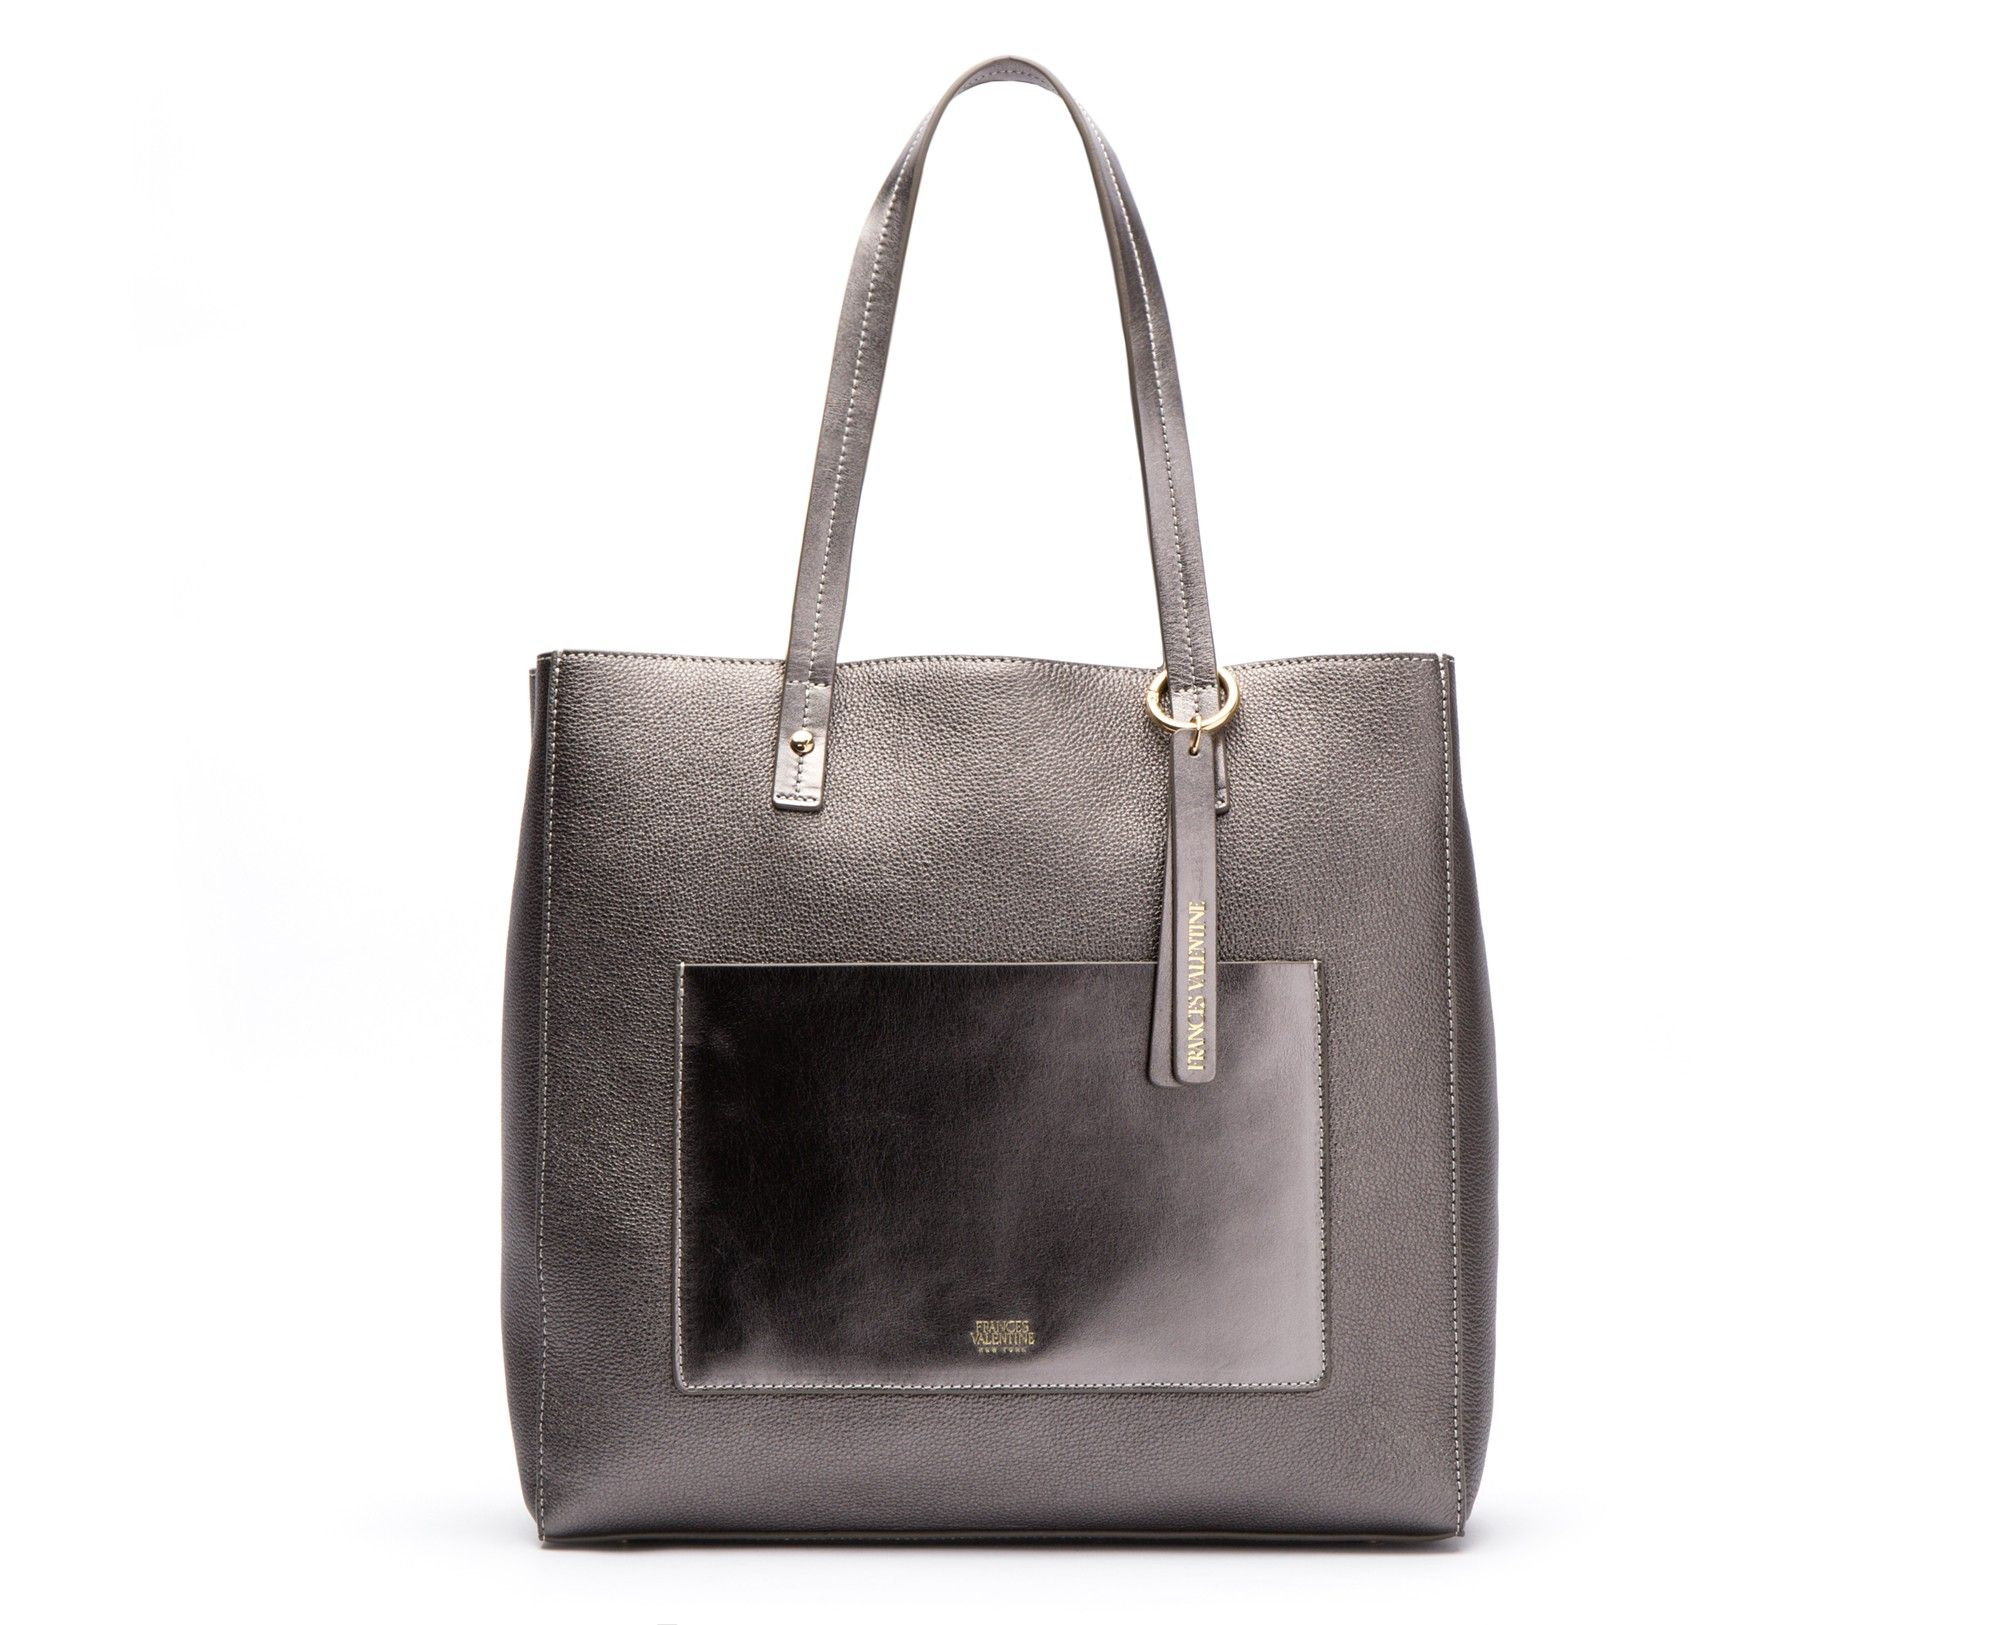 c13ed790af The Tall Chloe Pewter Leather: perfect for carrying your laptop and other everyday  essentials. Design by Kate Valentine Spade.